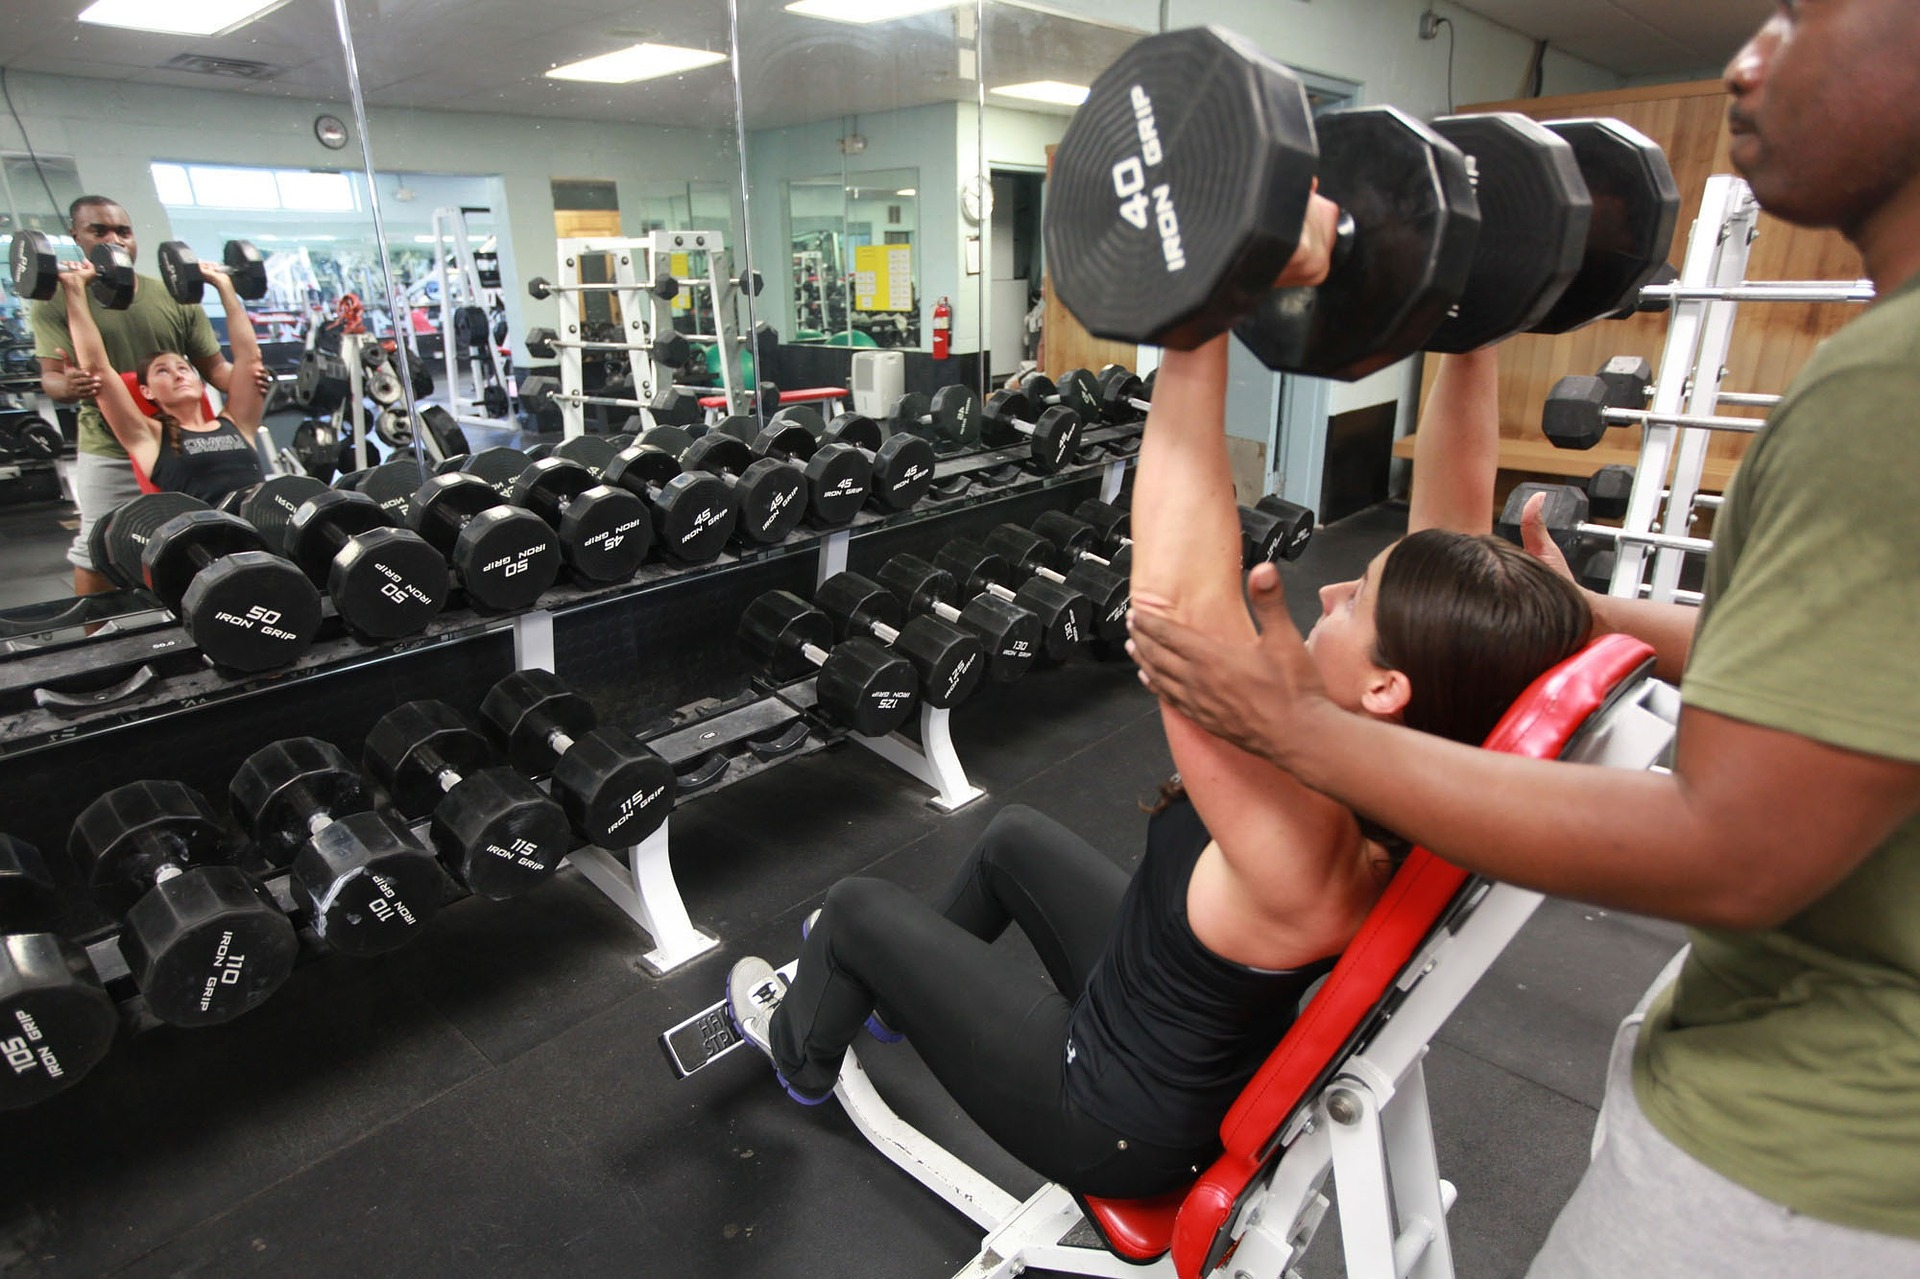 Lifting weights - Most Common Misconceptions About Lifting Heavy Weights